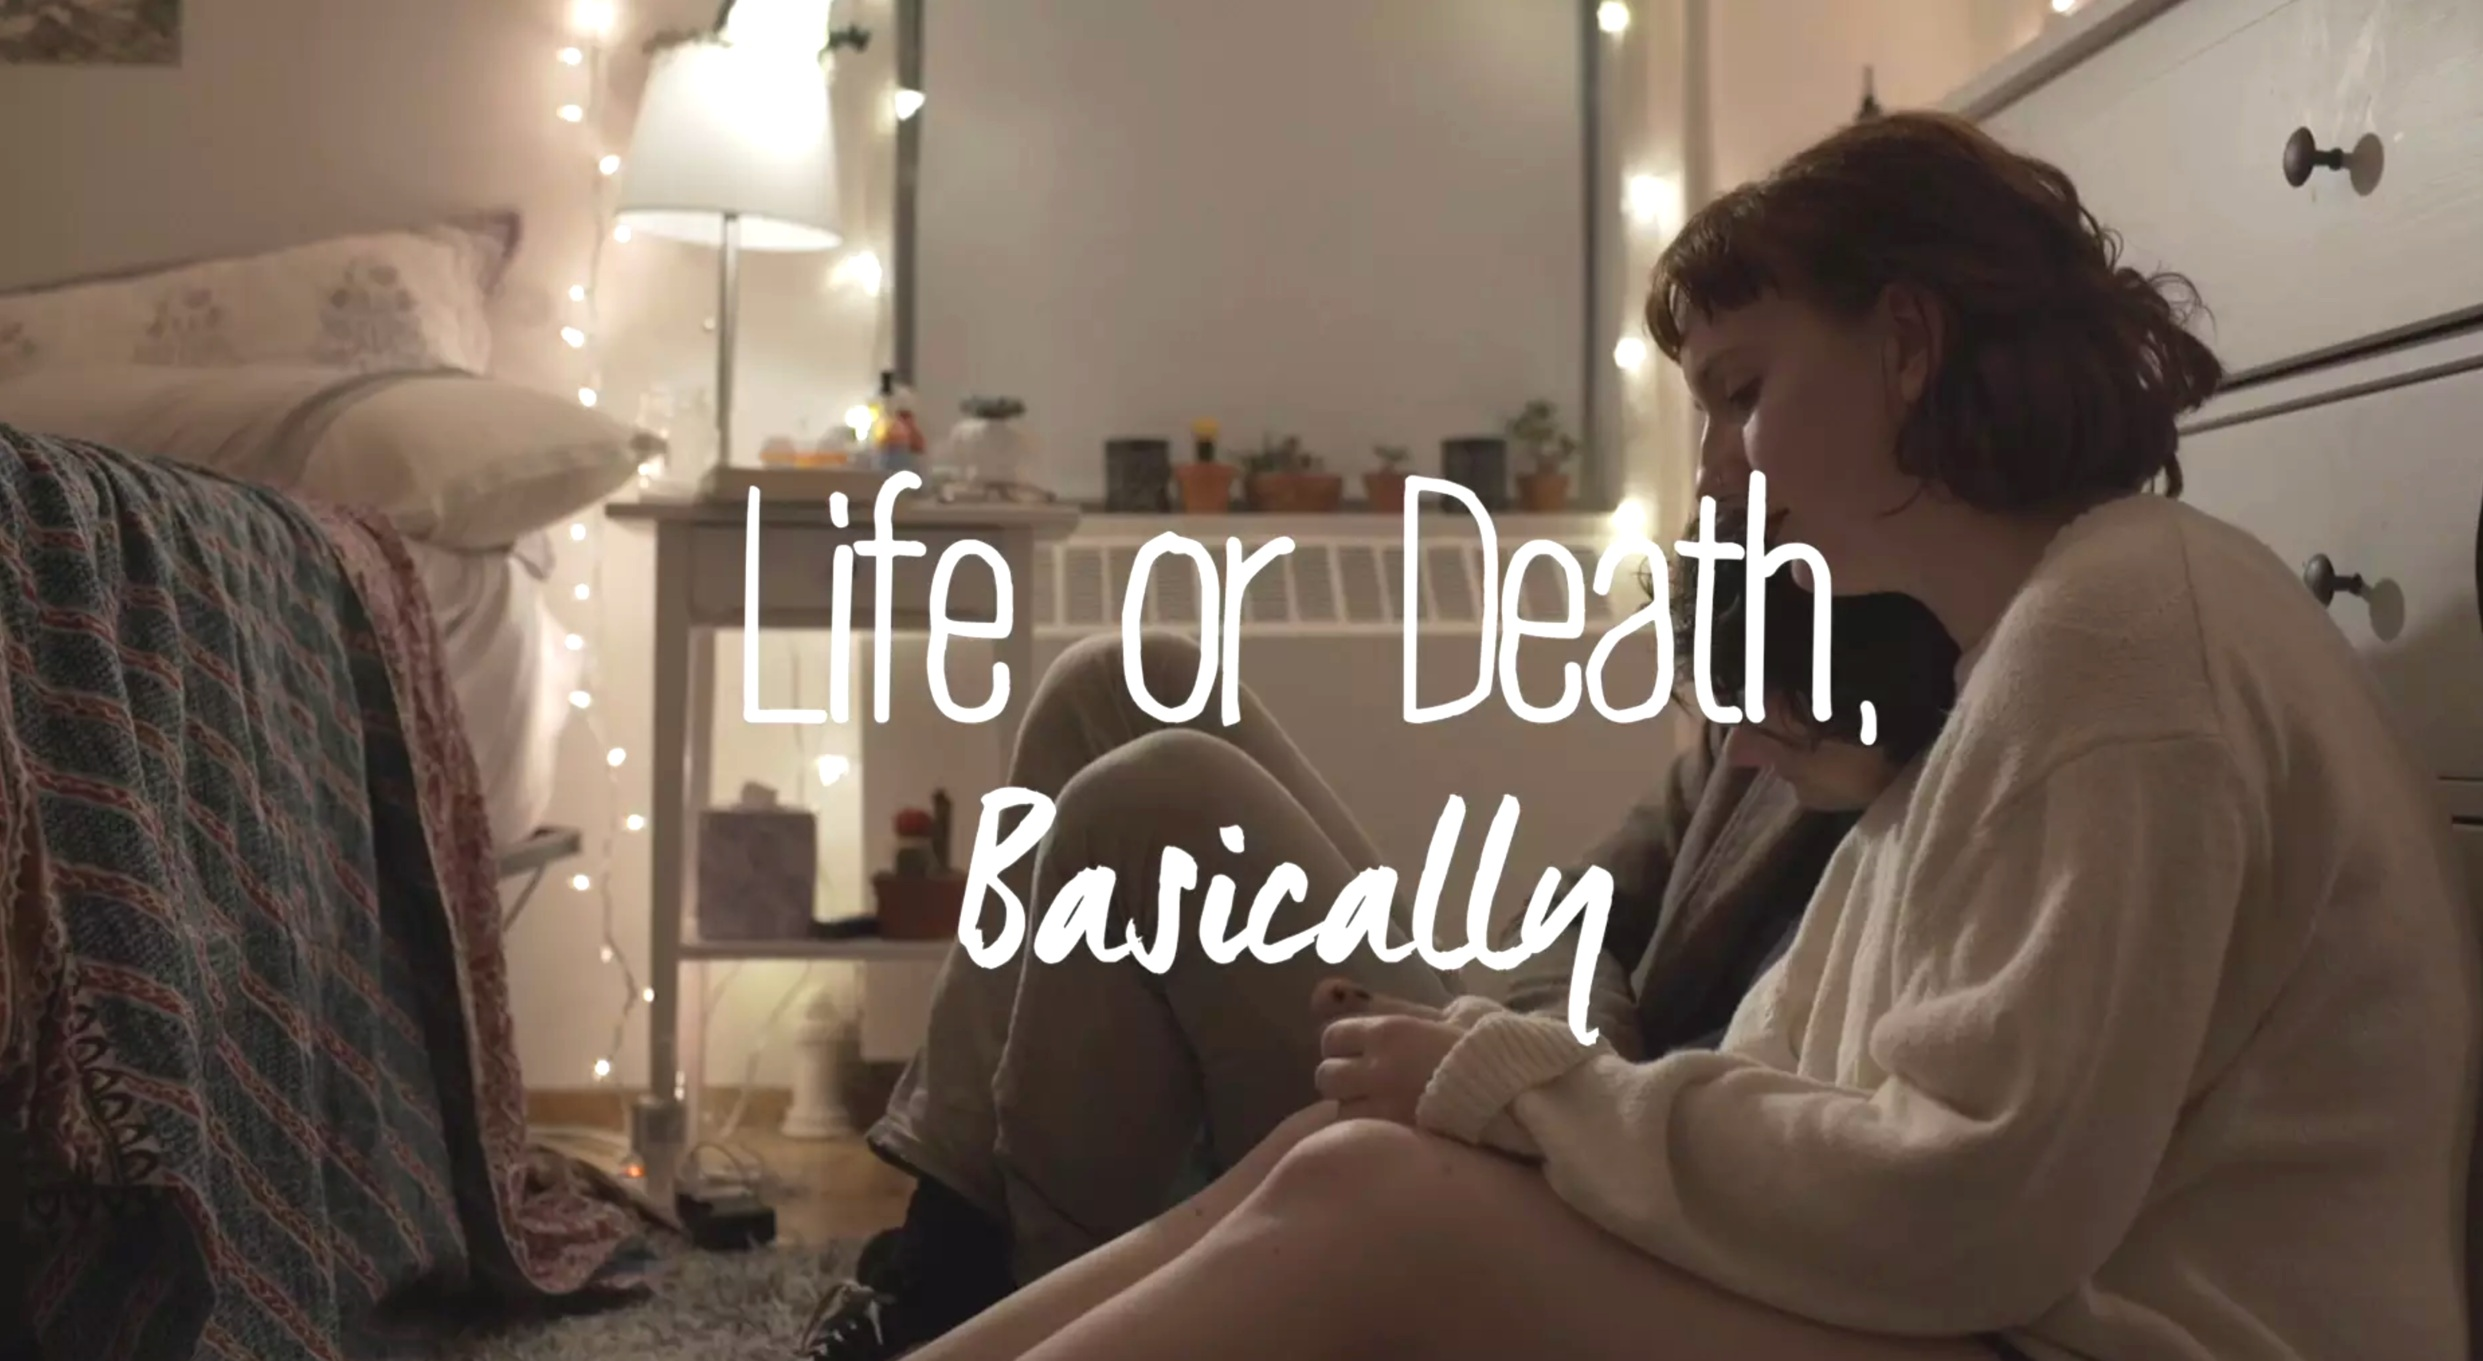 Life or Death, Basically (web series) — creator, writer, star - Life or Death, Basically is a story about addictive love, codependency, and mental illness seen through the eyes of Maggie, a recent college graduate with borderline personality disorder. It deals with the awkward joy of new love, the pain of codependent relationships, and the difficulty of navigating life as a person whose perception of herself and others is never quite steady.